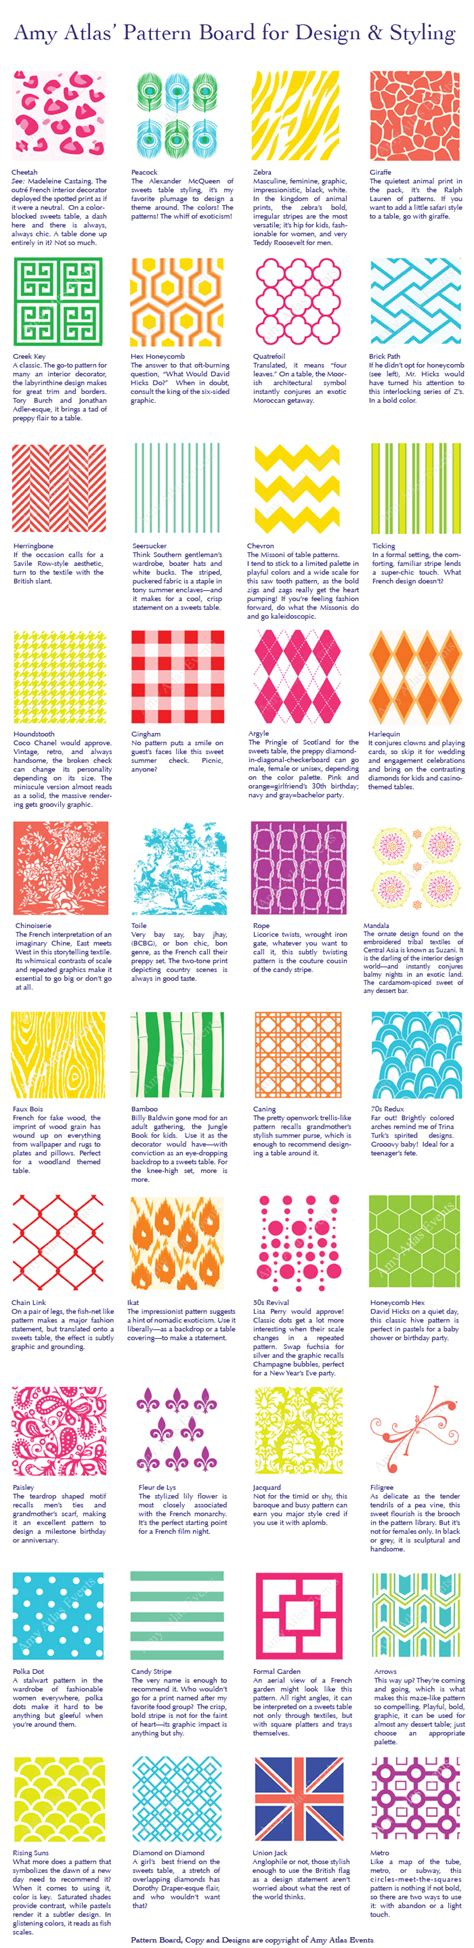 design pattern guide amy atlas glossary of patterns